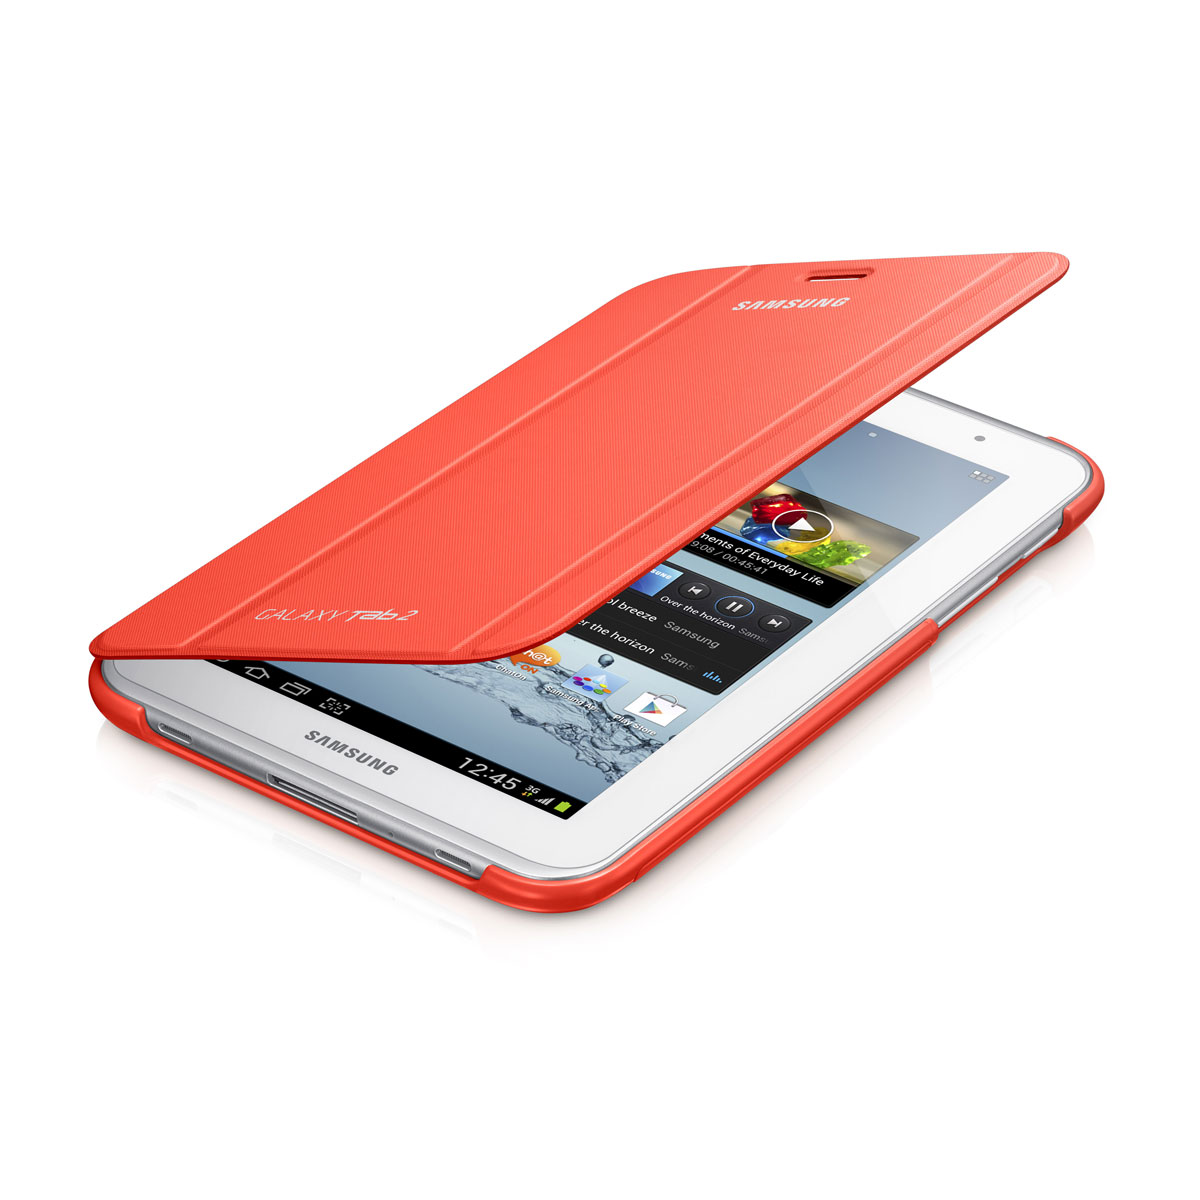 samsung book cover orange pour samsung galaxy tab 2 7 0 accessoires tablette samsung sur ldlc. Black Bedroom Furniture Sets. Home Design Ideas